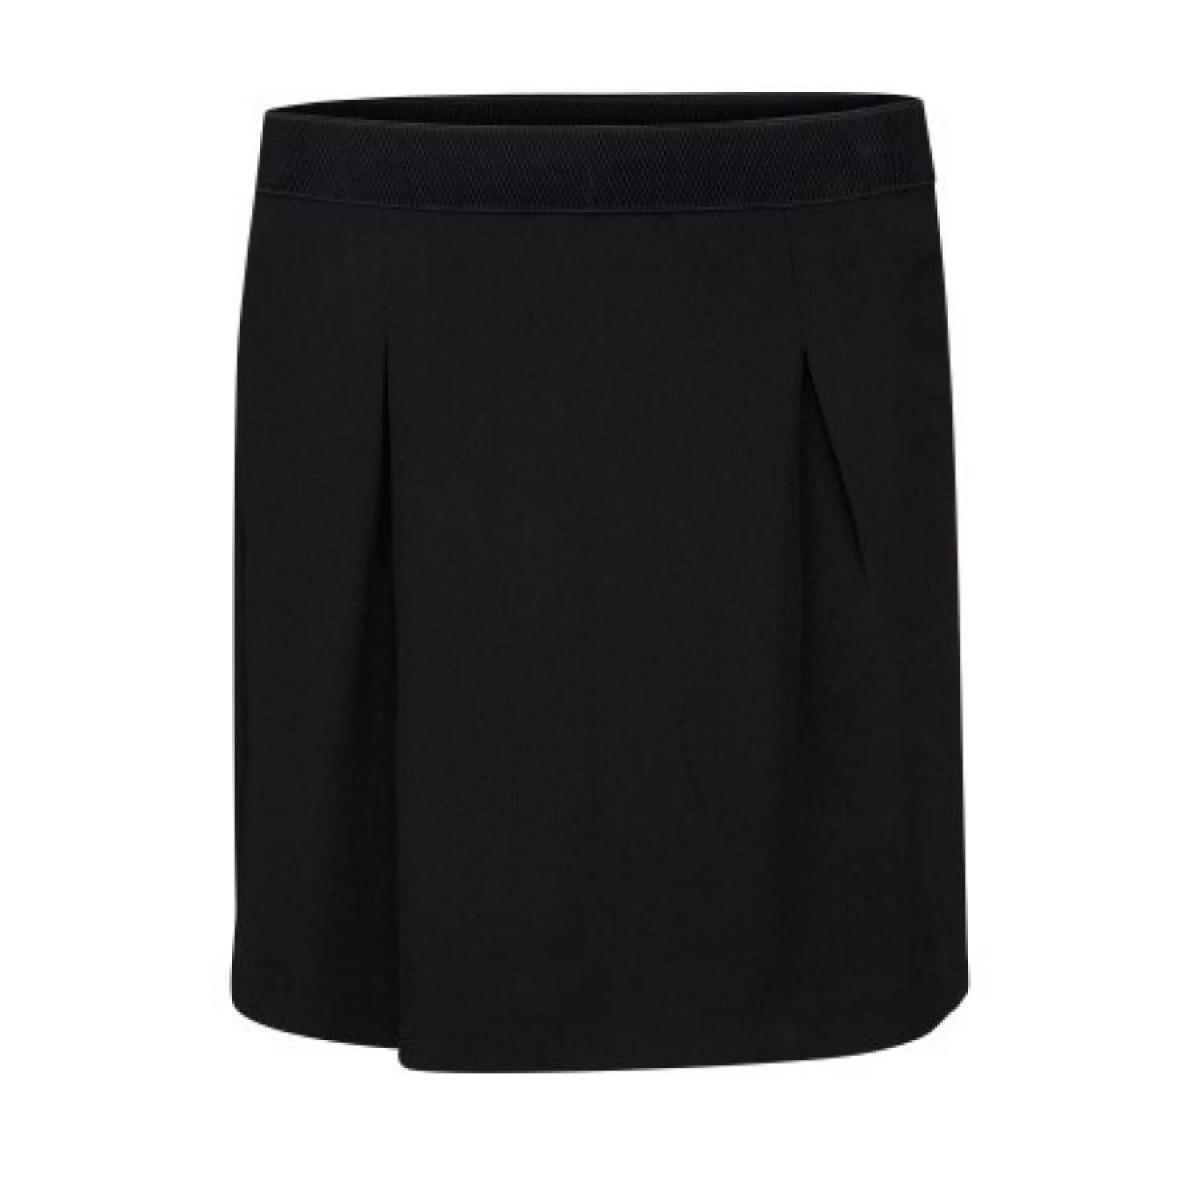 Sofie Schnoor S161268 Skirt Black-35